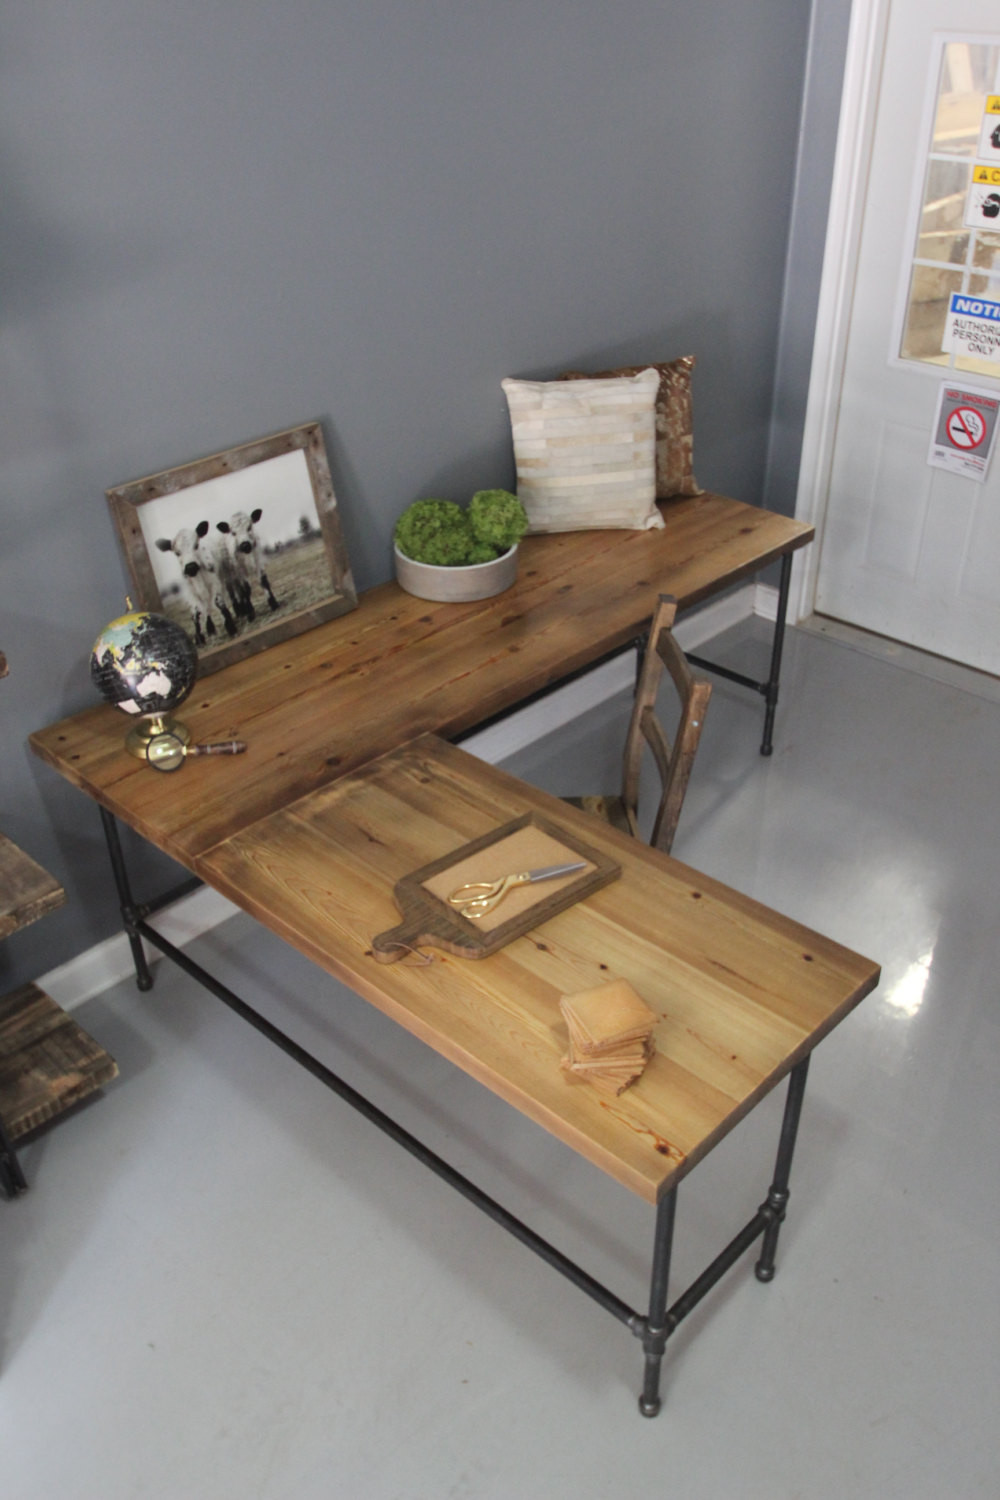 Best ideas about Wood Desk DIY . Save or Pin L Shaped Desk Wood Desk Pipe Desk Reclaimed Wood by DendroCo Now.